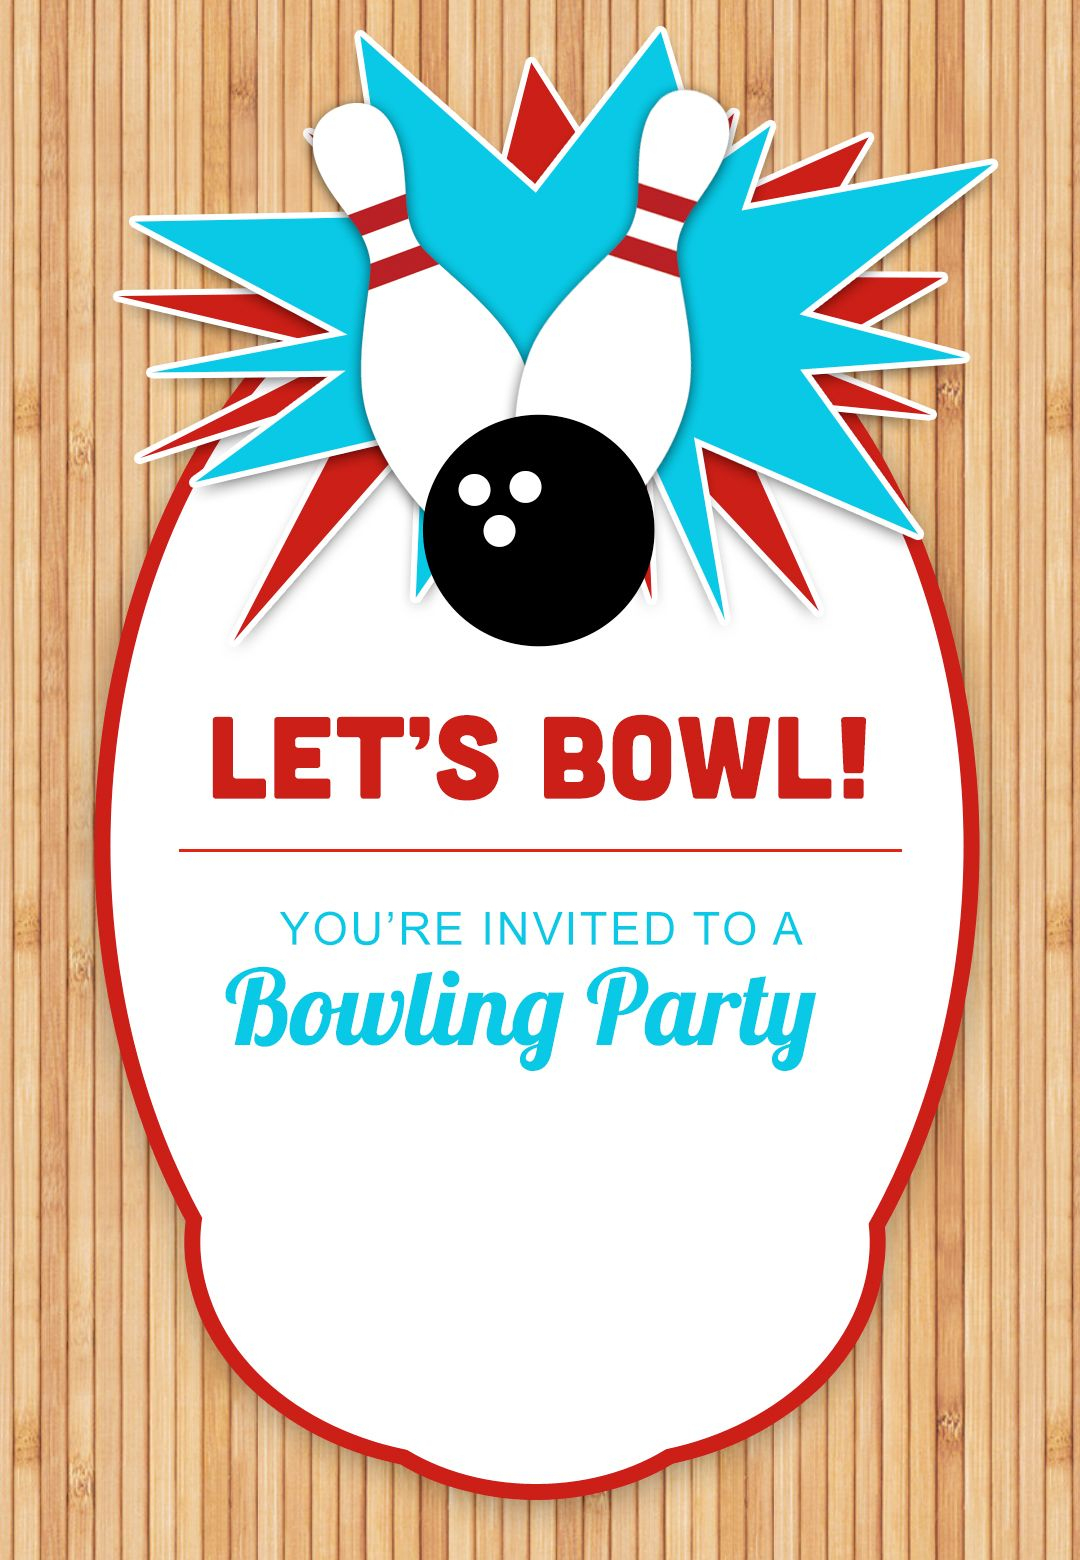 Bowling Party - Free Printable Birthday Invitation Template - Free Printable Bowling Birthday Party Invitations